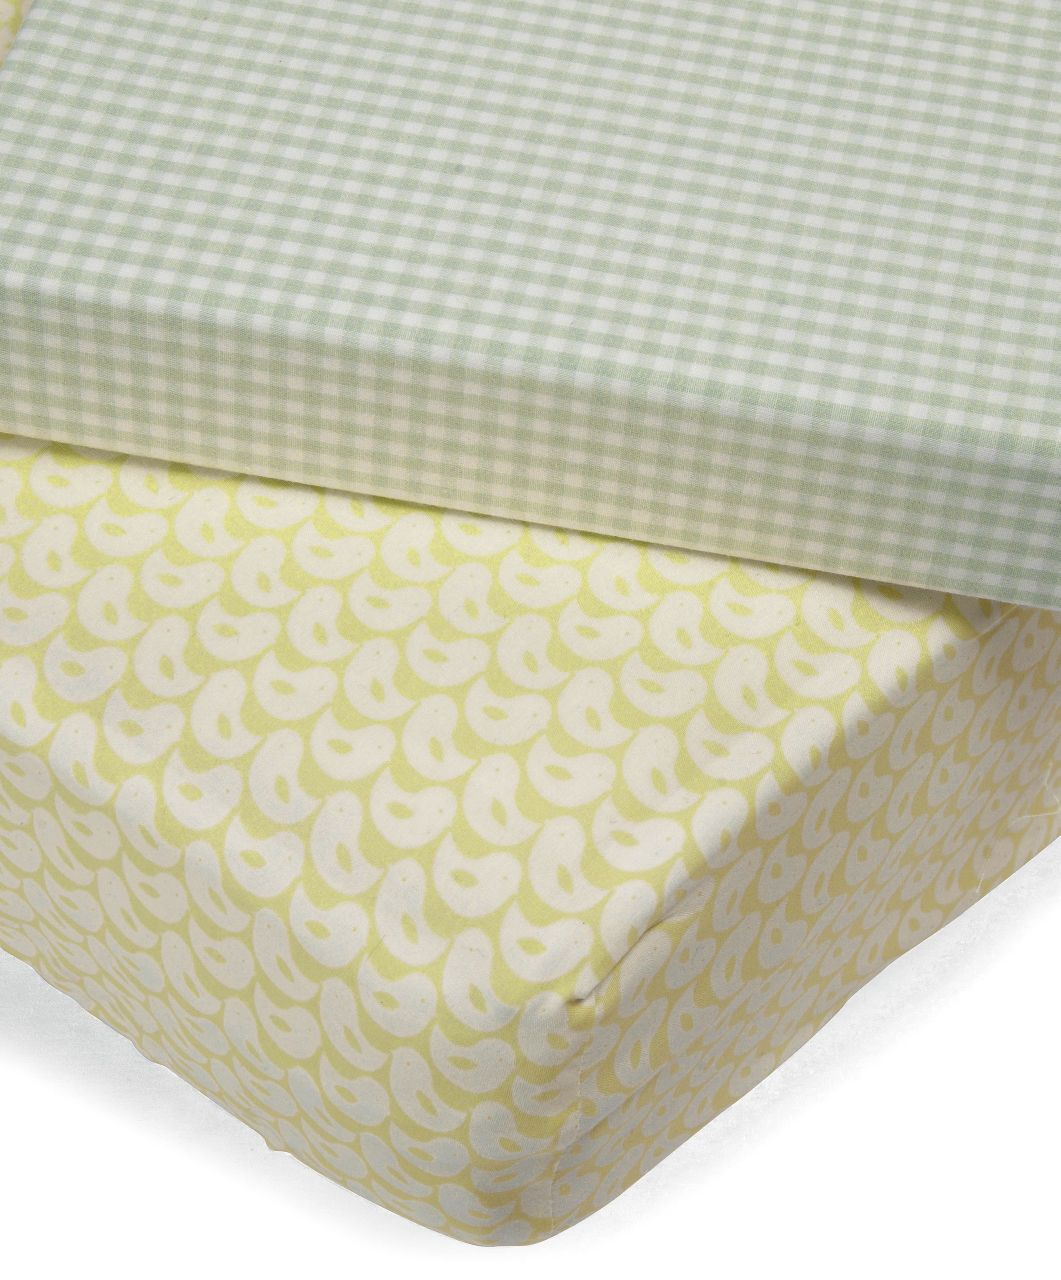 Gorgeous Fitted Cot Bed Sheets   Whirligig   Fitted Sheets   Nursery  Interiors   Mamas U0026